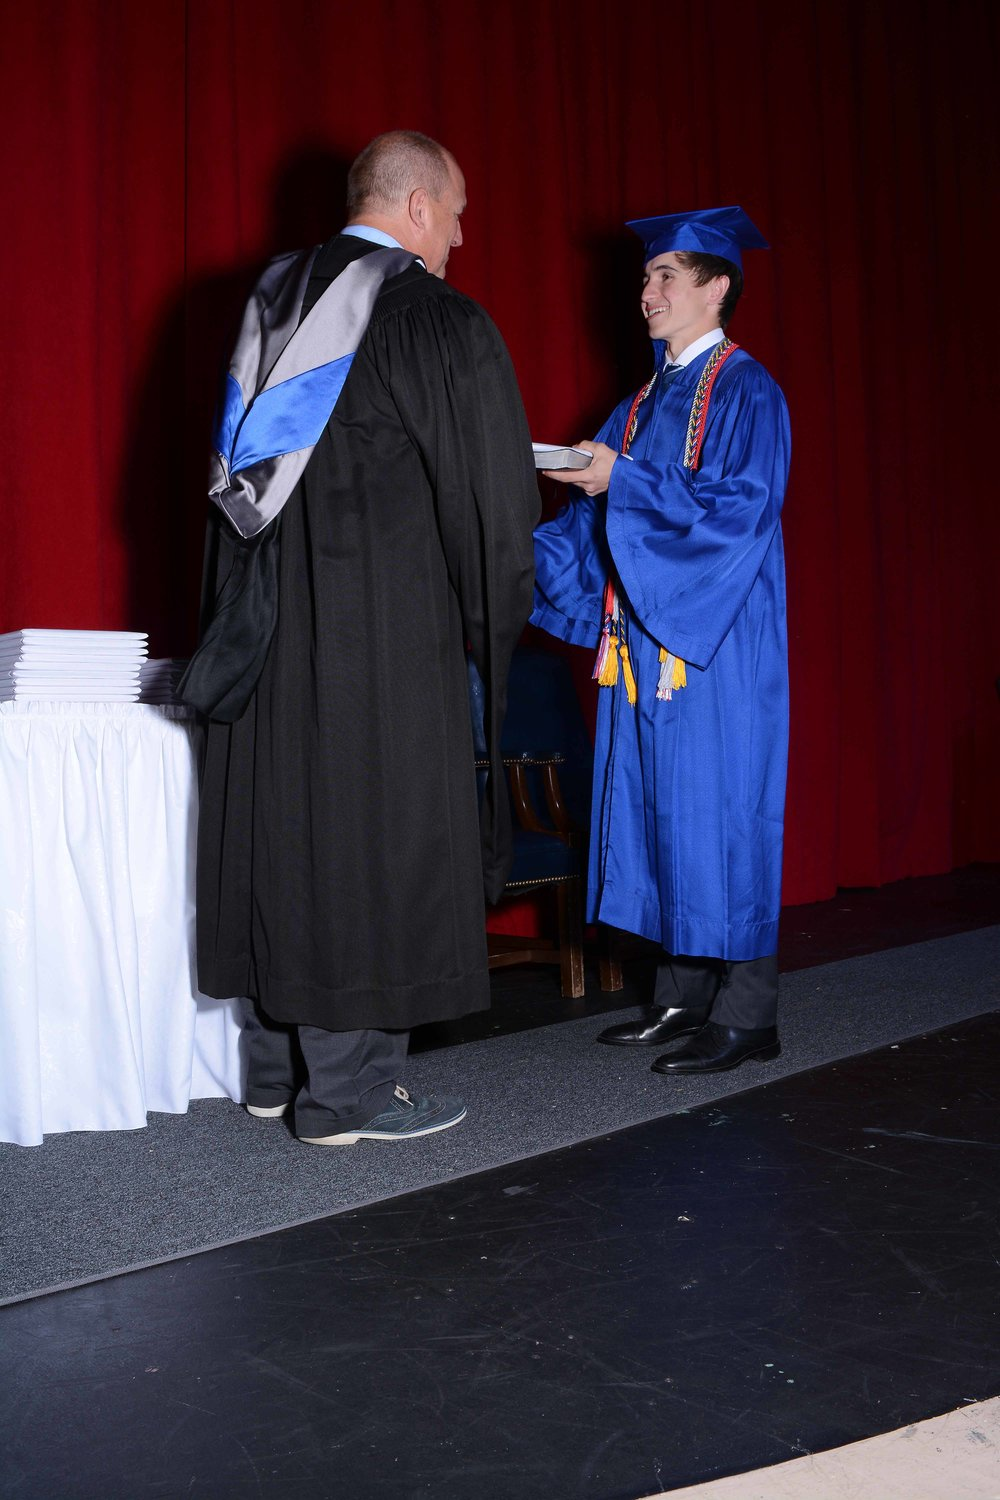 May14 Commencement91.jpg